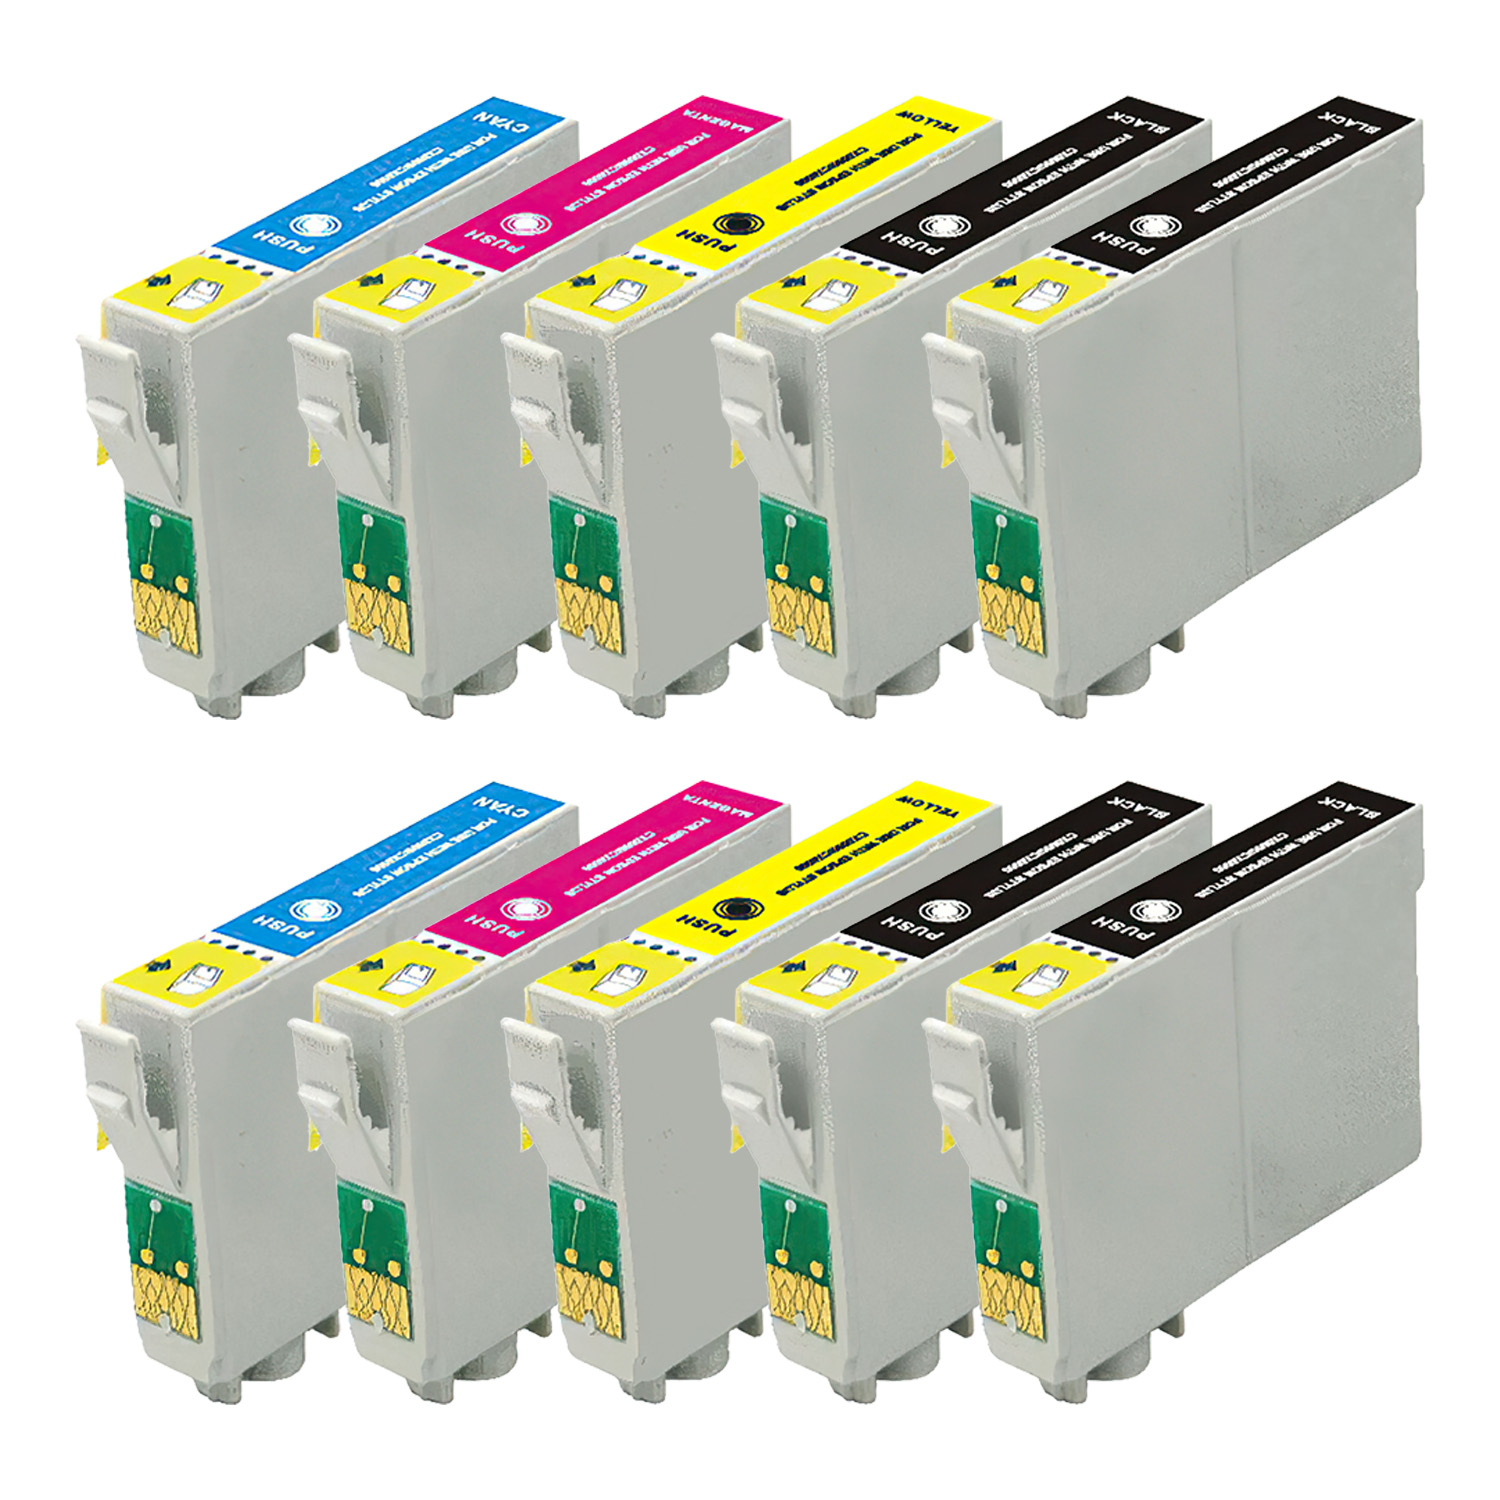 Remanufactured Epson 69 Inkjet Pack - 10 Cartridges